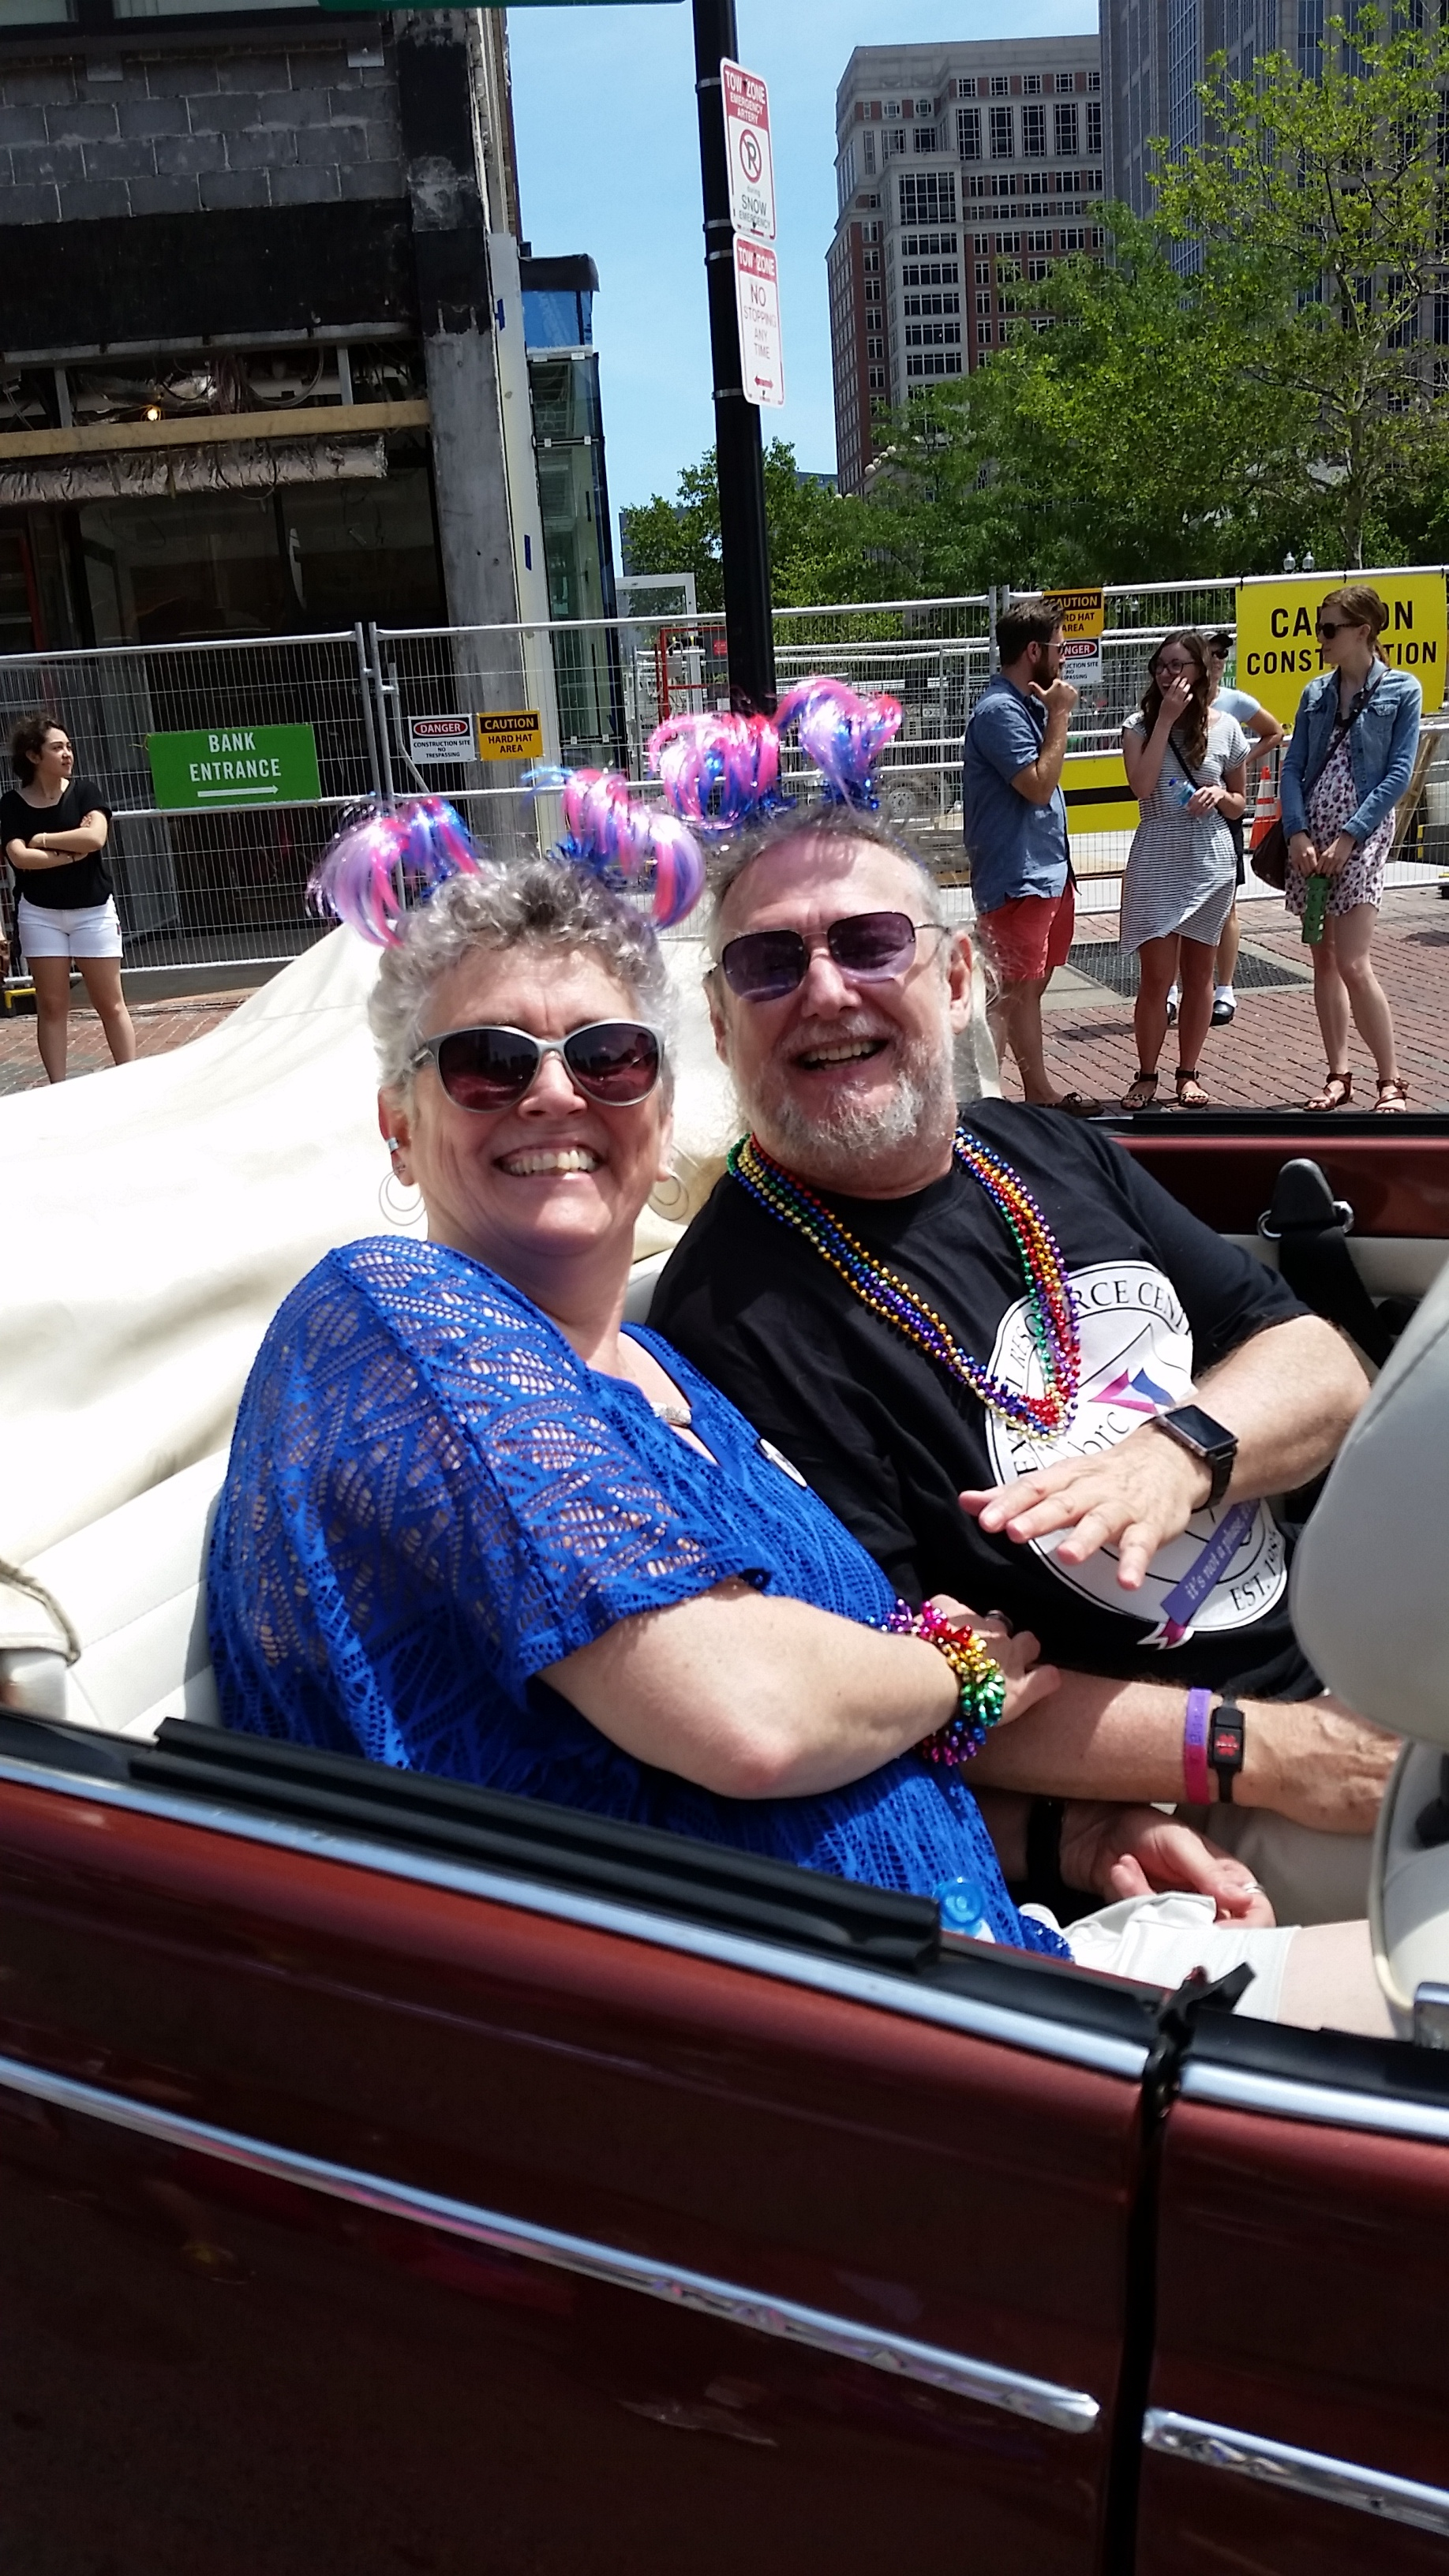 Ellyn and Woody, wearing bi-colored ribbon headbands, pose in a car at Pride 2015